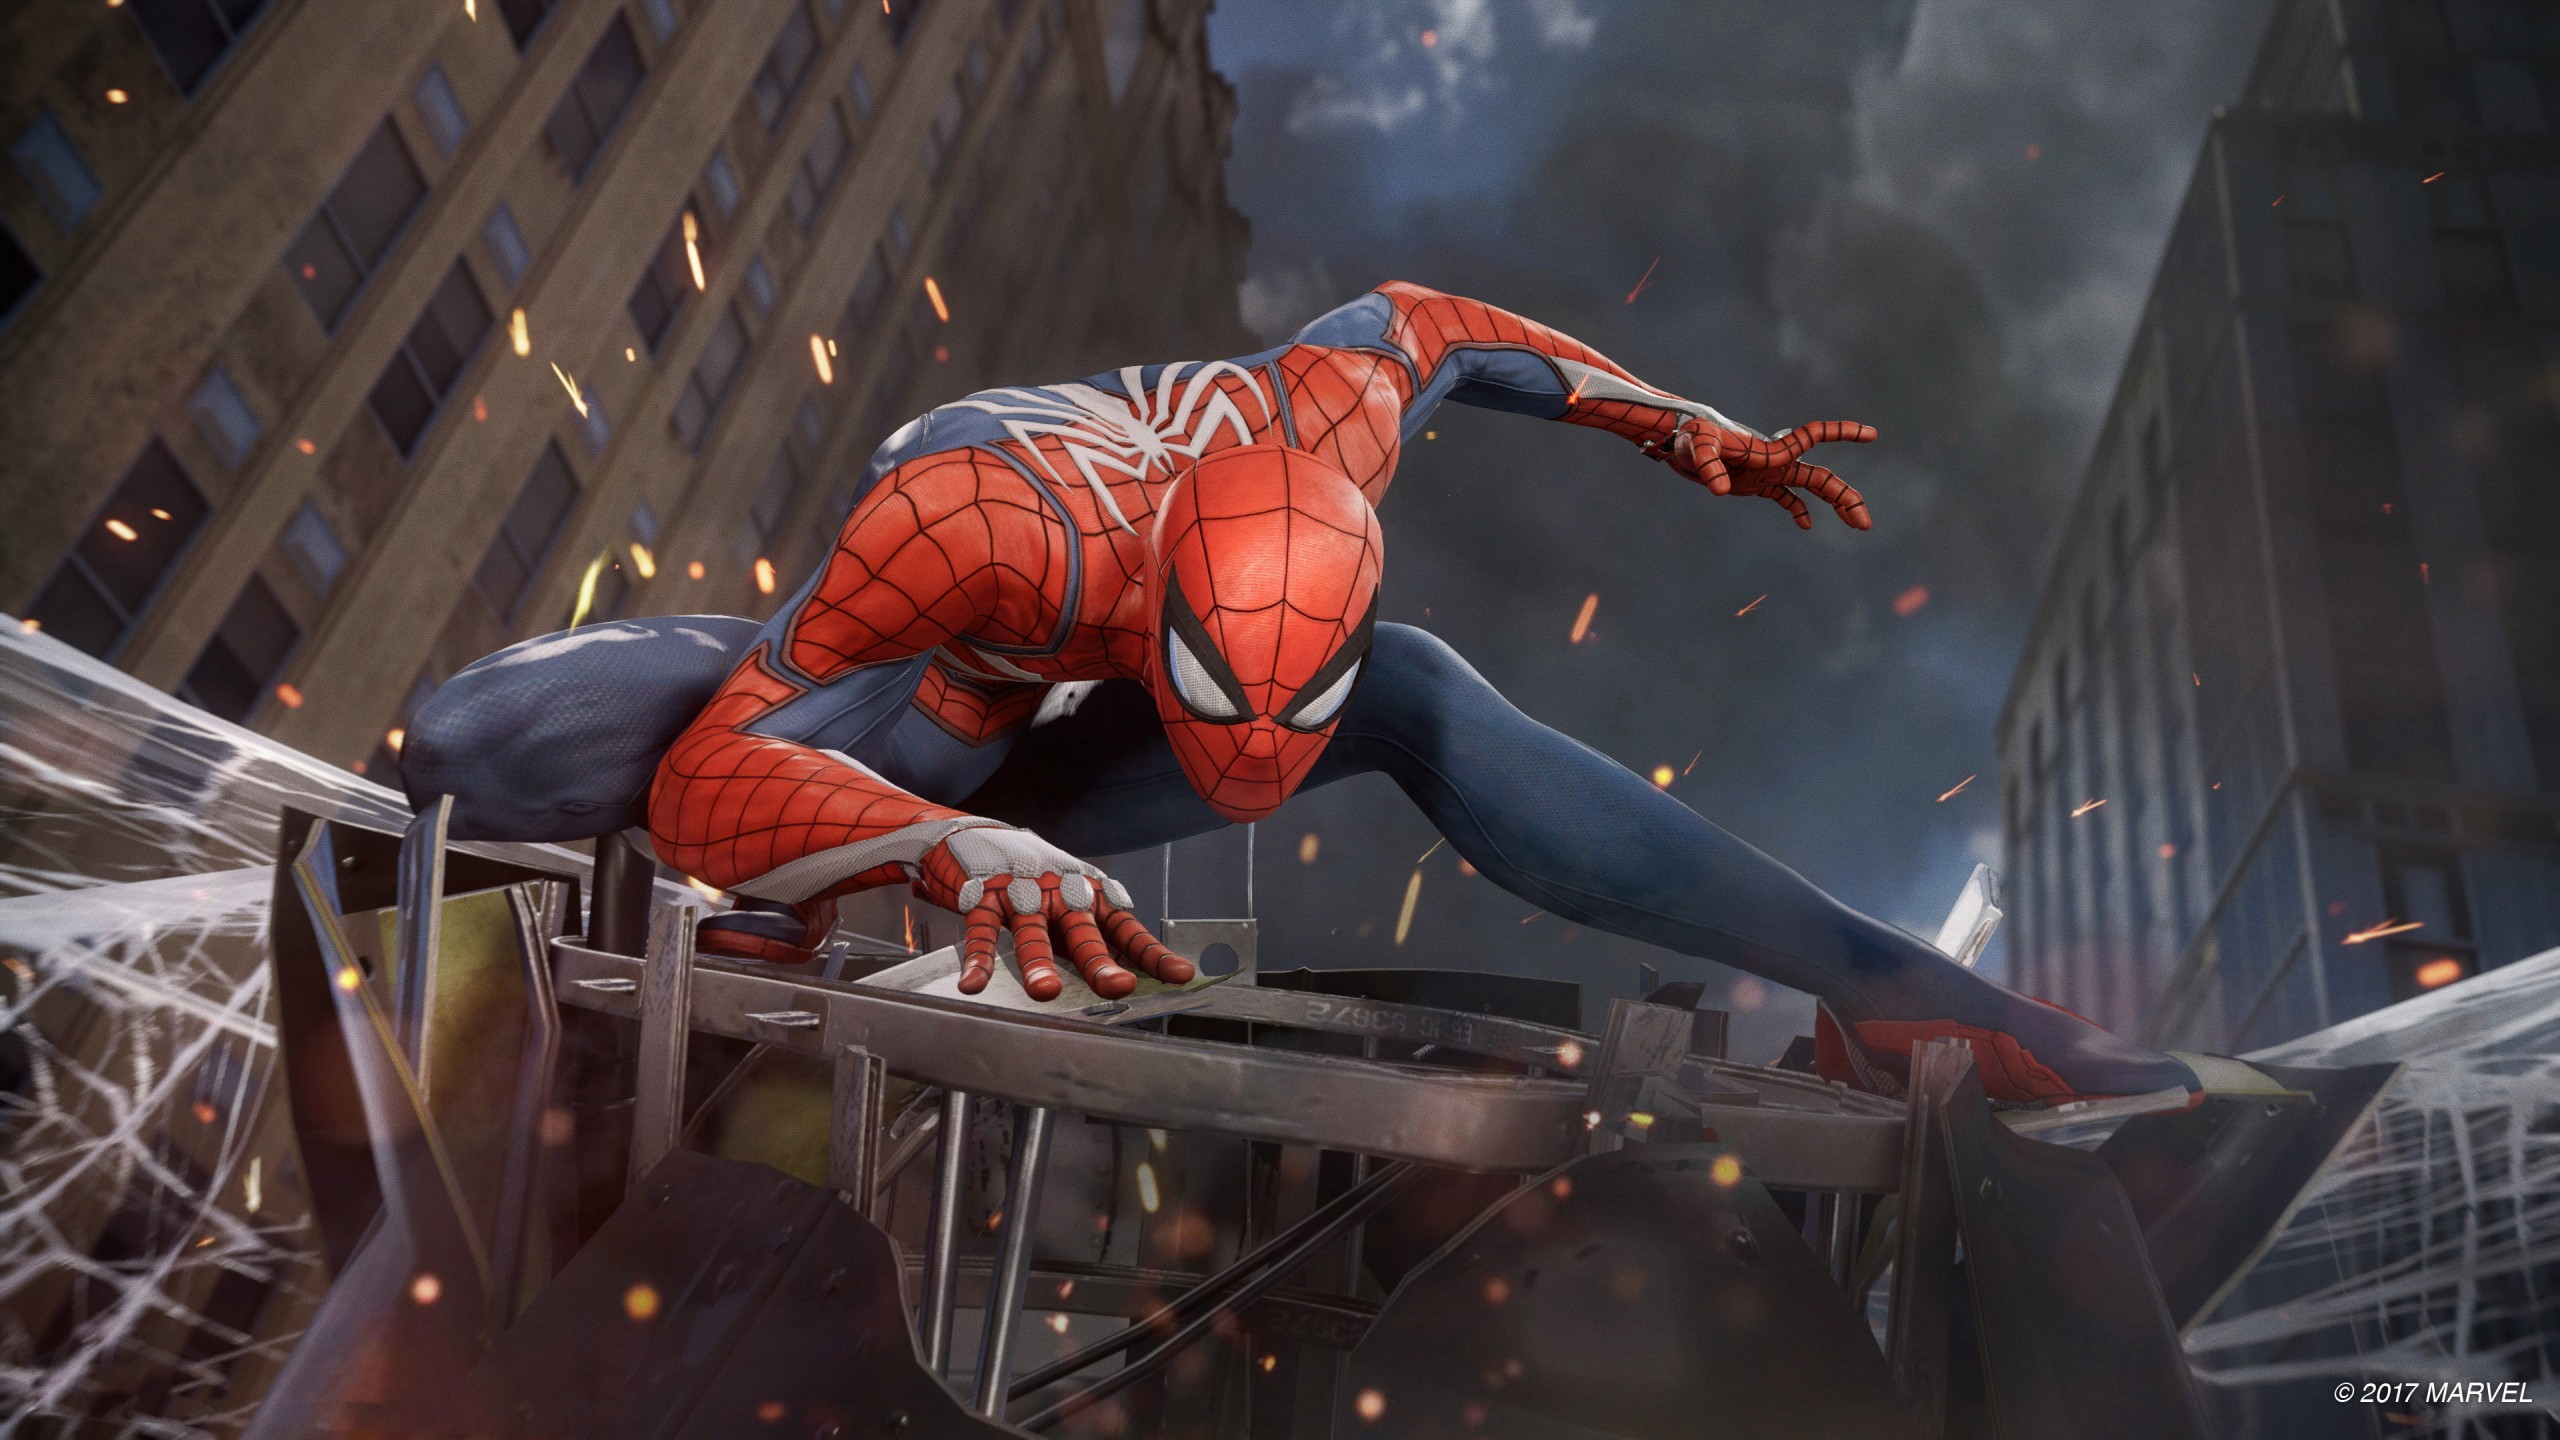 4k Spiderman Wallpaper 55 Images